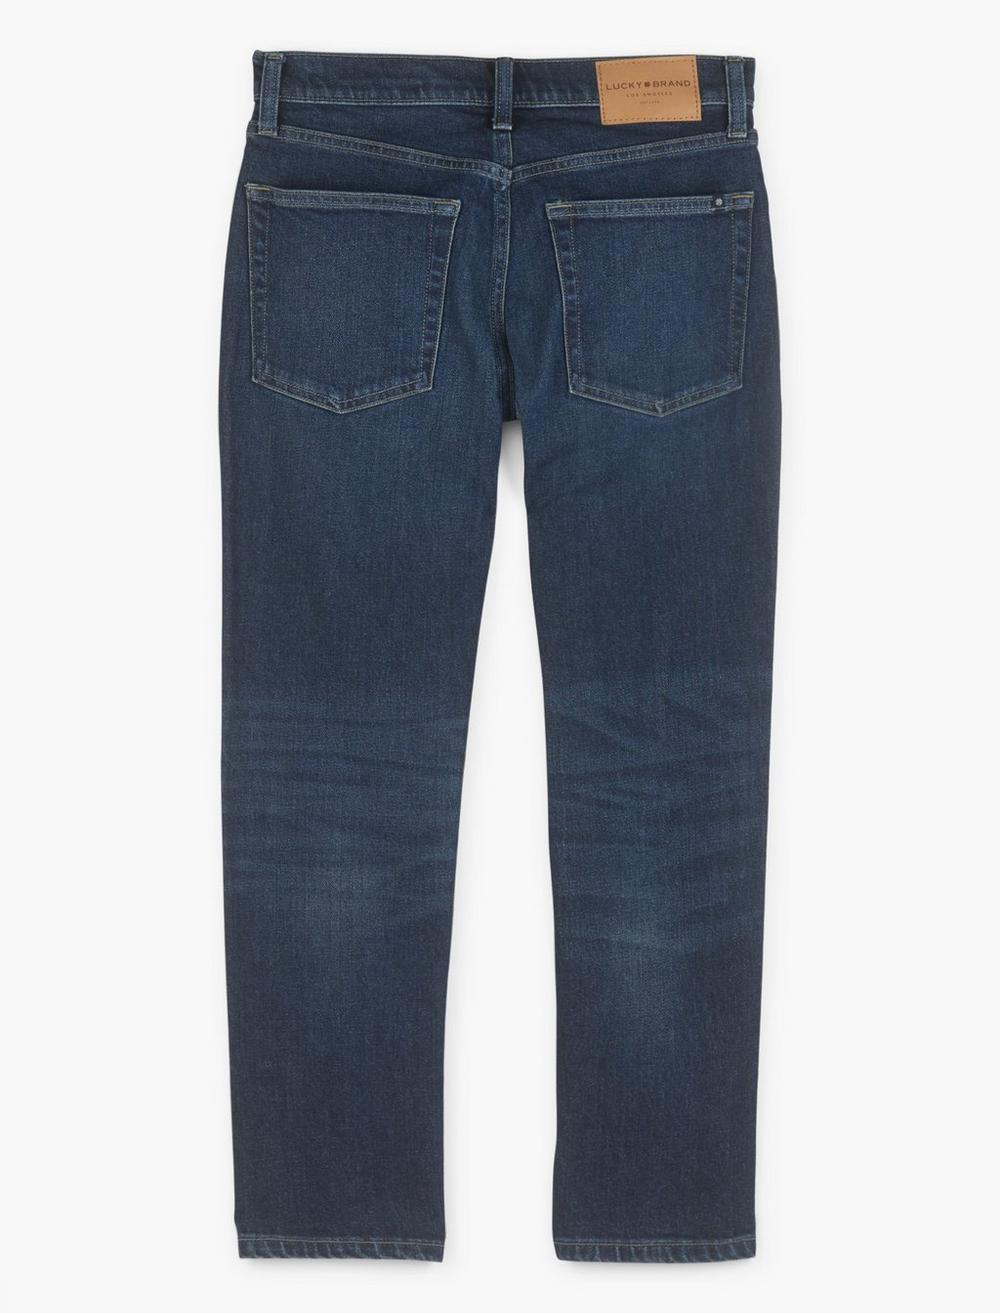 RELAXED TAPER JEAN, image 2